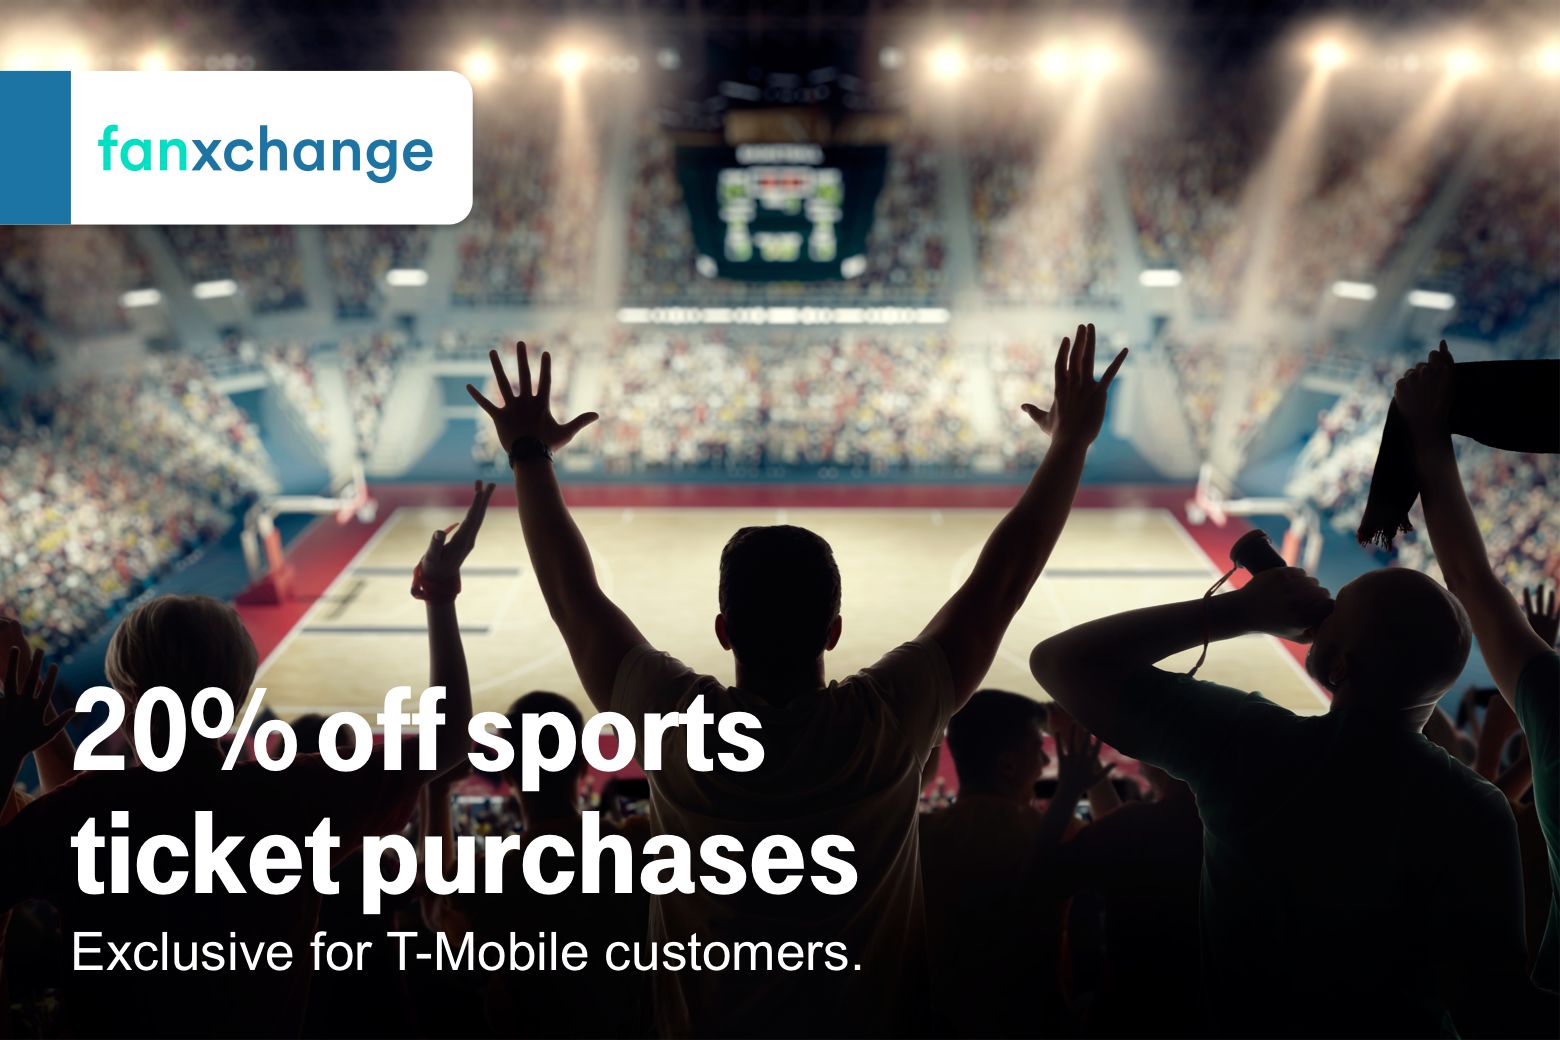 Fanxchange. 20% off sports ticket purchases. Exclusive for T-Mobile customers.